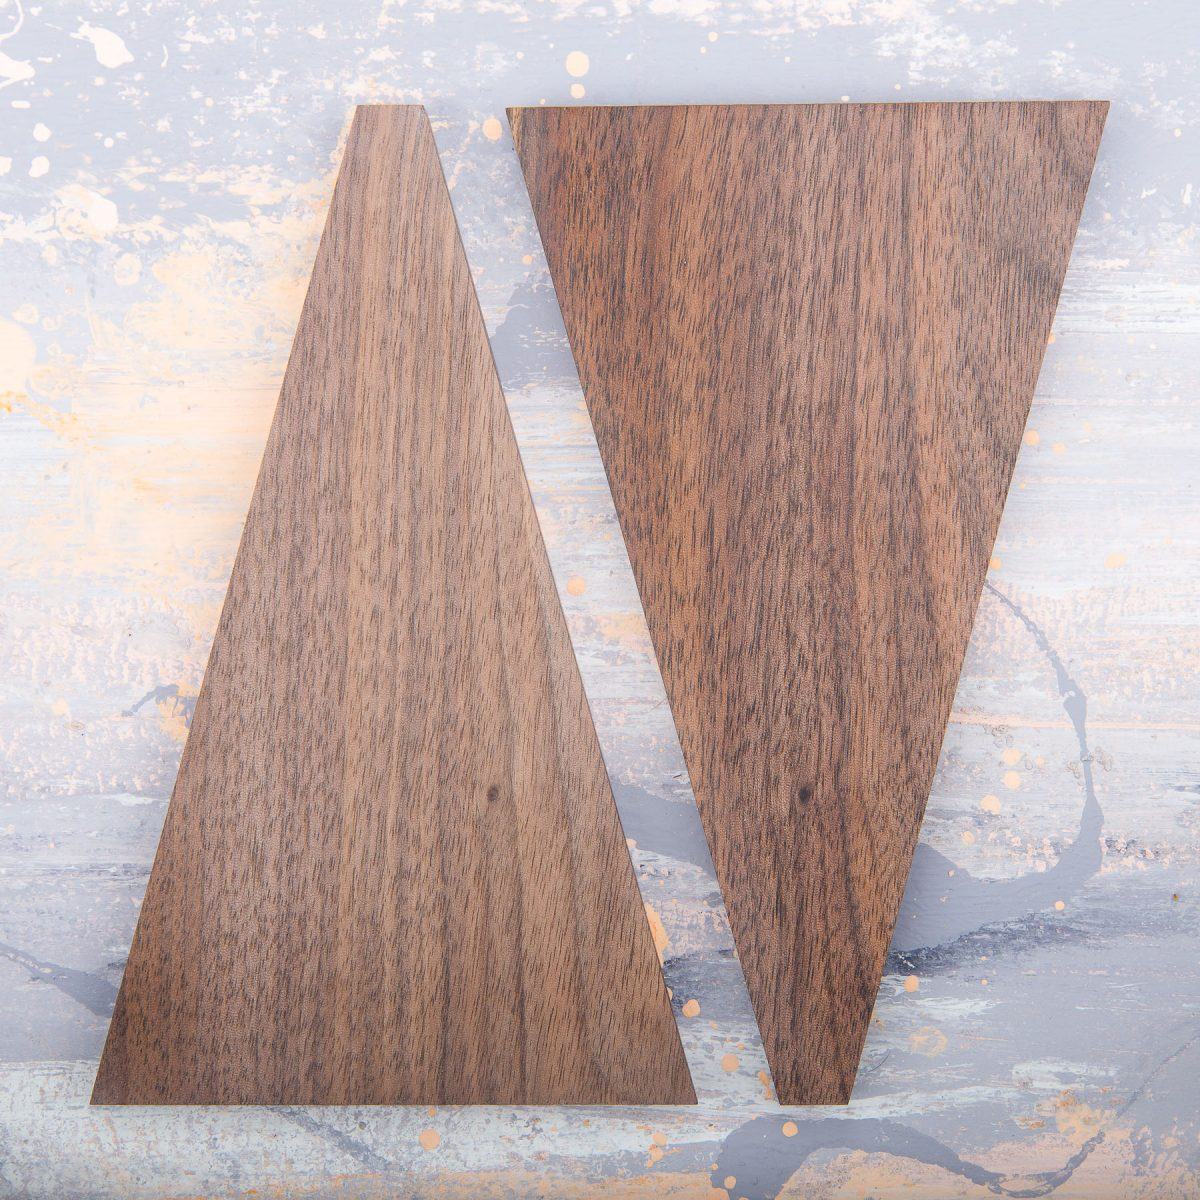 Jan Hendzel Studio samples english walnut